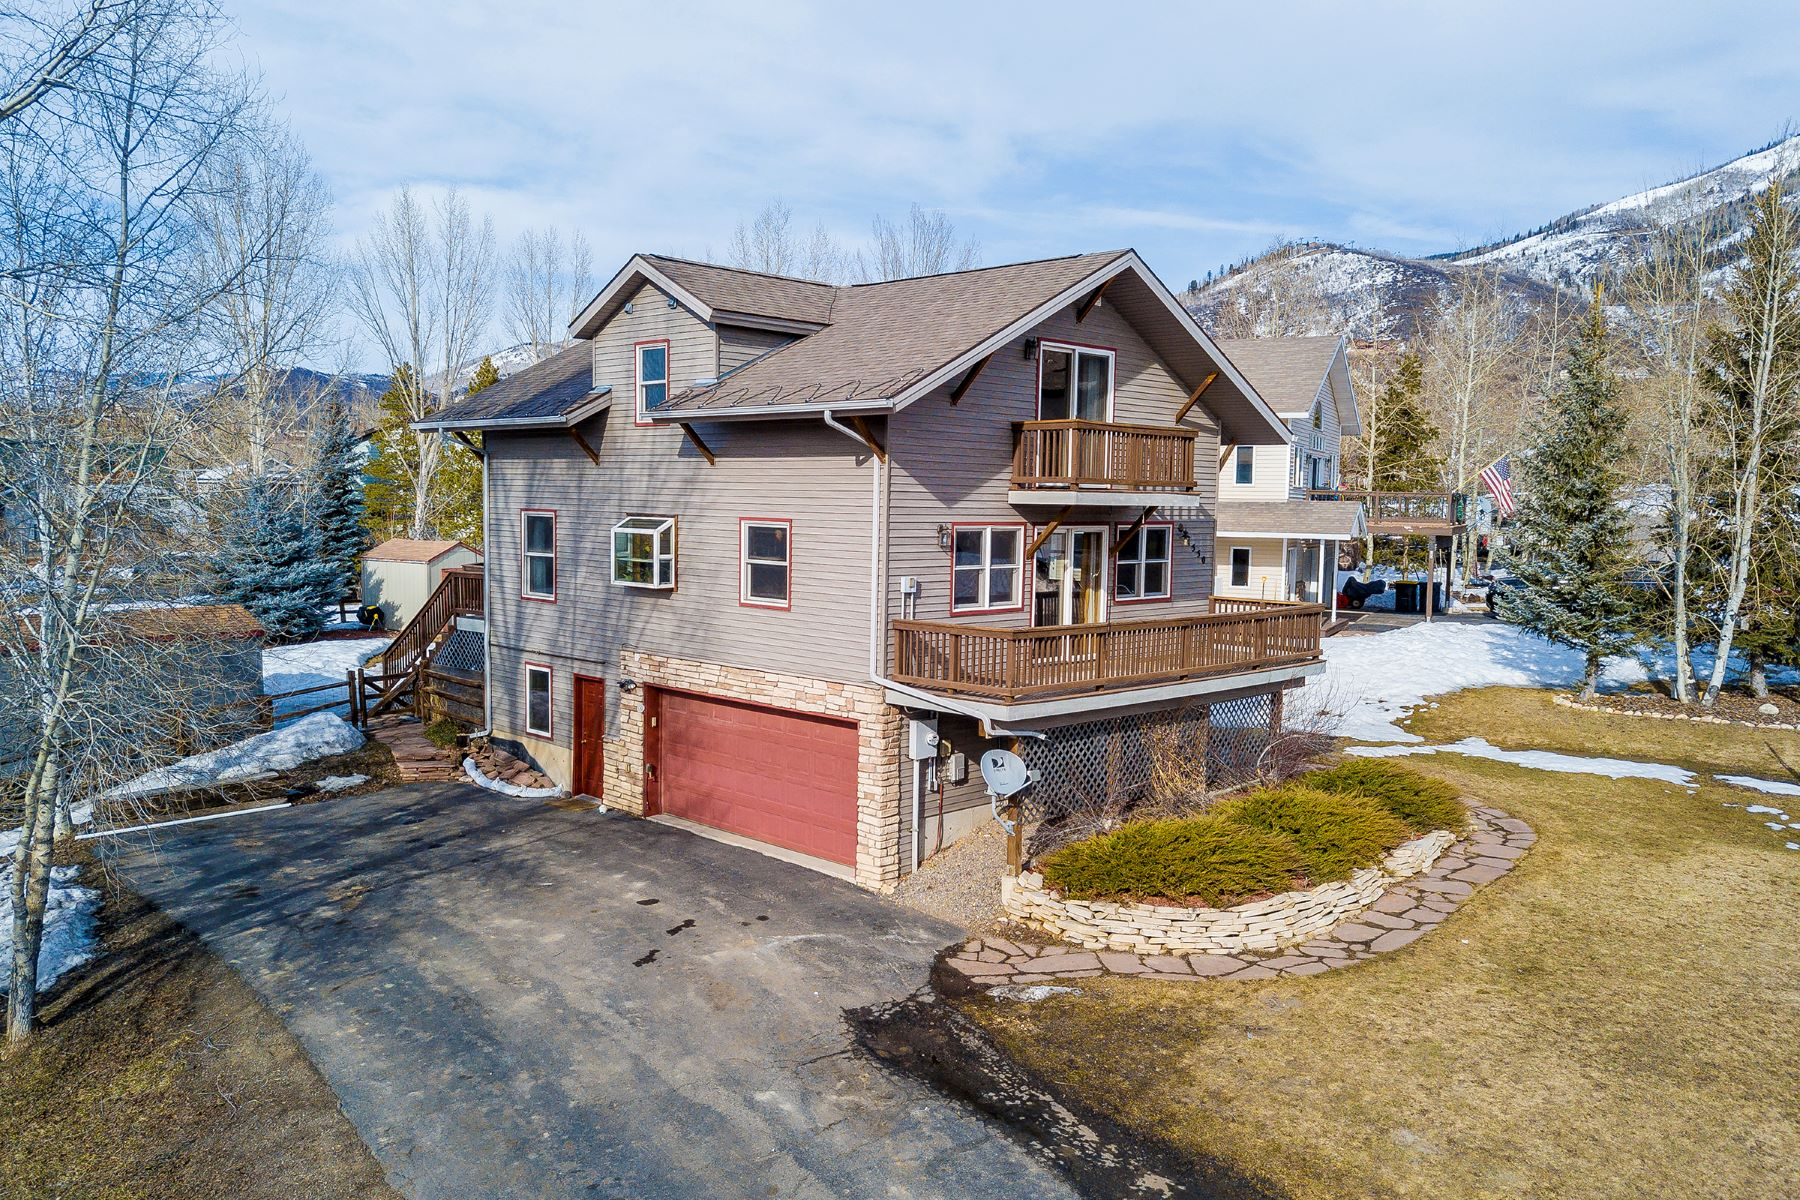 Single Family Home for Sale at 1550 Red Hawk Ct Easy Access to the Steamboat Springs Ski Area Steamboat Springs, Colorado, 80487 United States